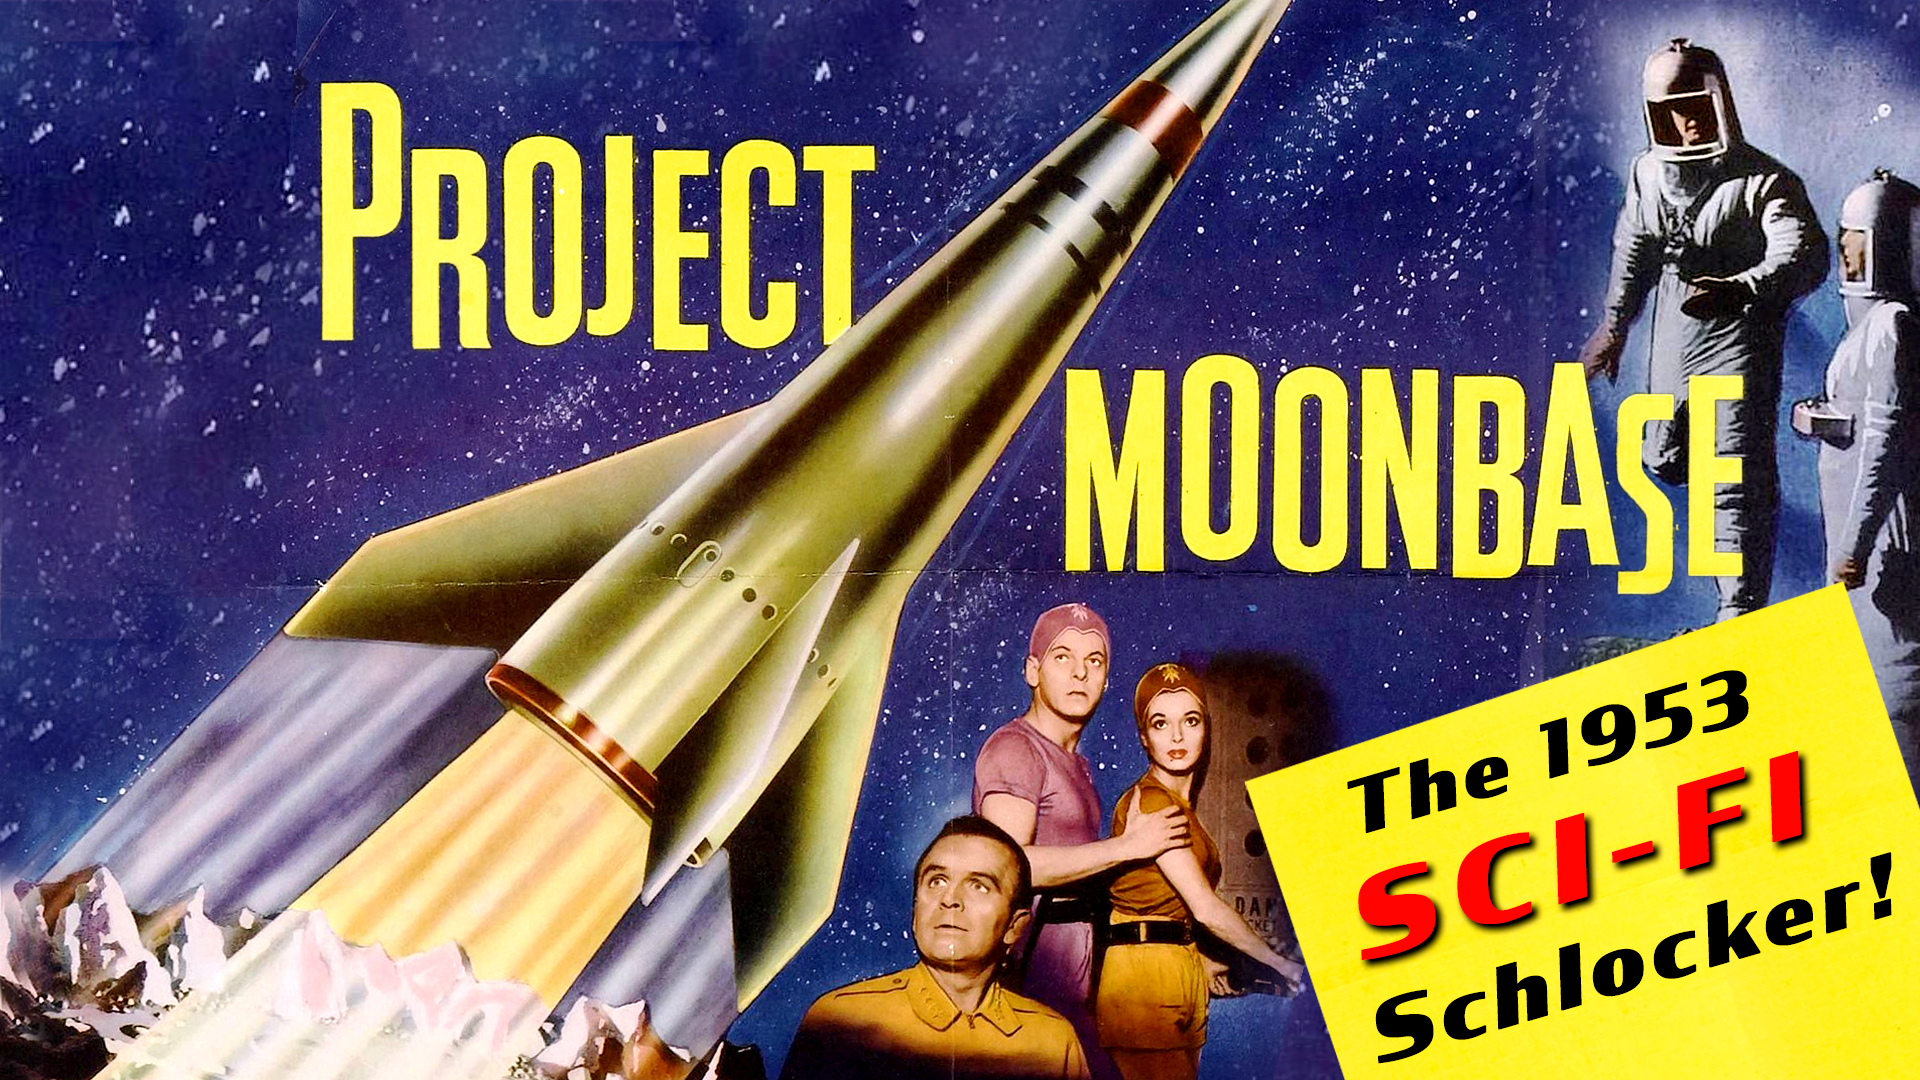 Project Moonbase - The 1953 SCI-FI Schlocker!